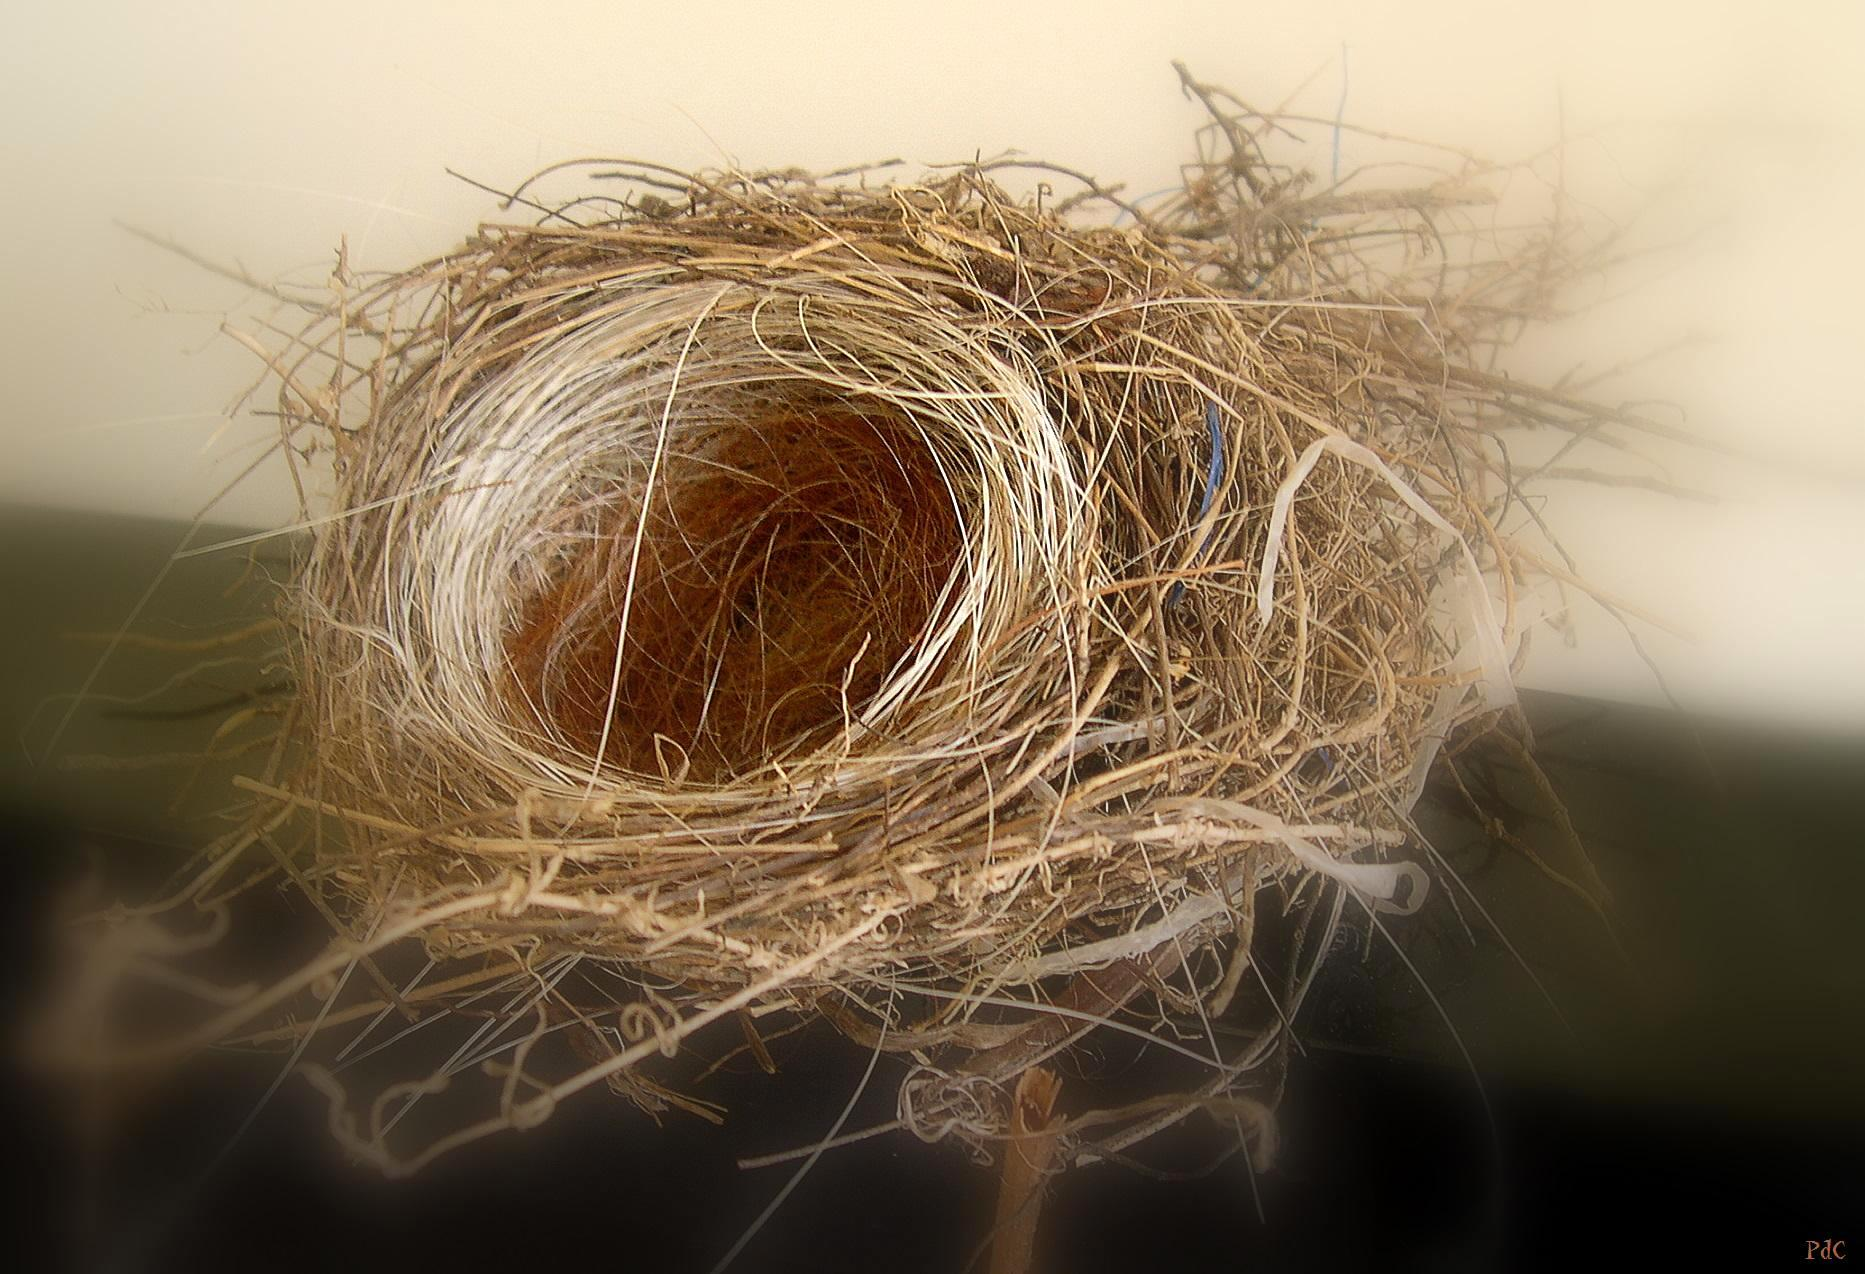 Lifeline Quotes Wallpaper White Hair In Our Bird S Nest New England S Narrow Road